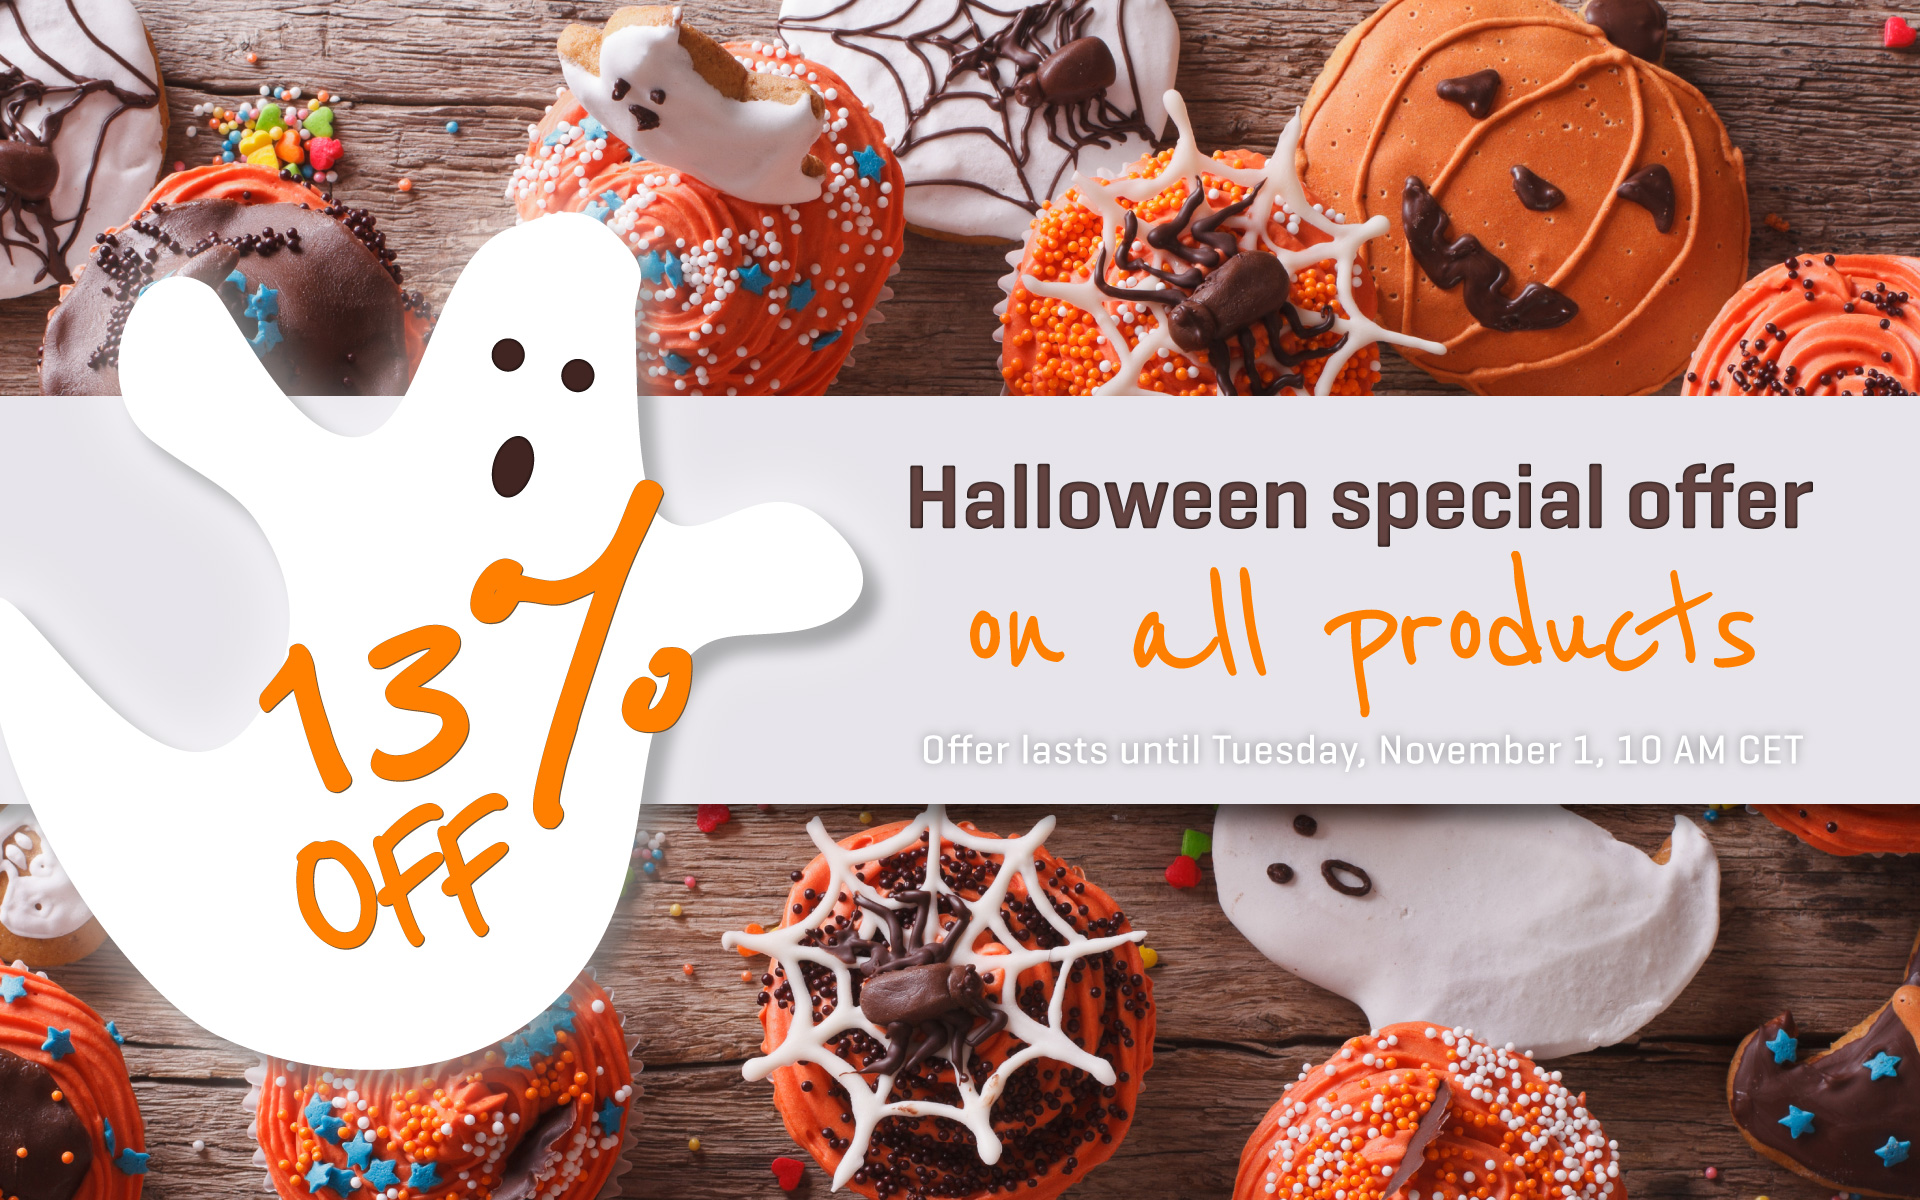 Halloween special offer: 13% OFF on all products